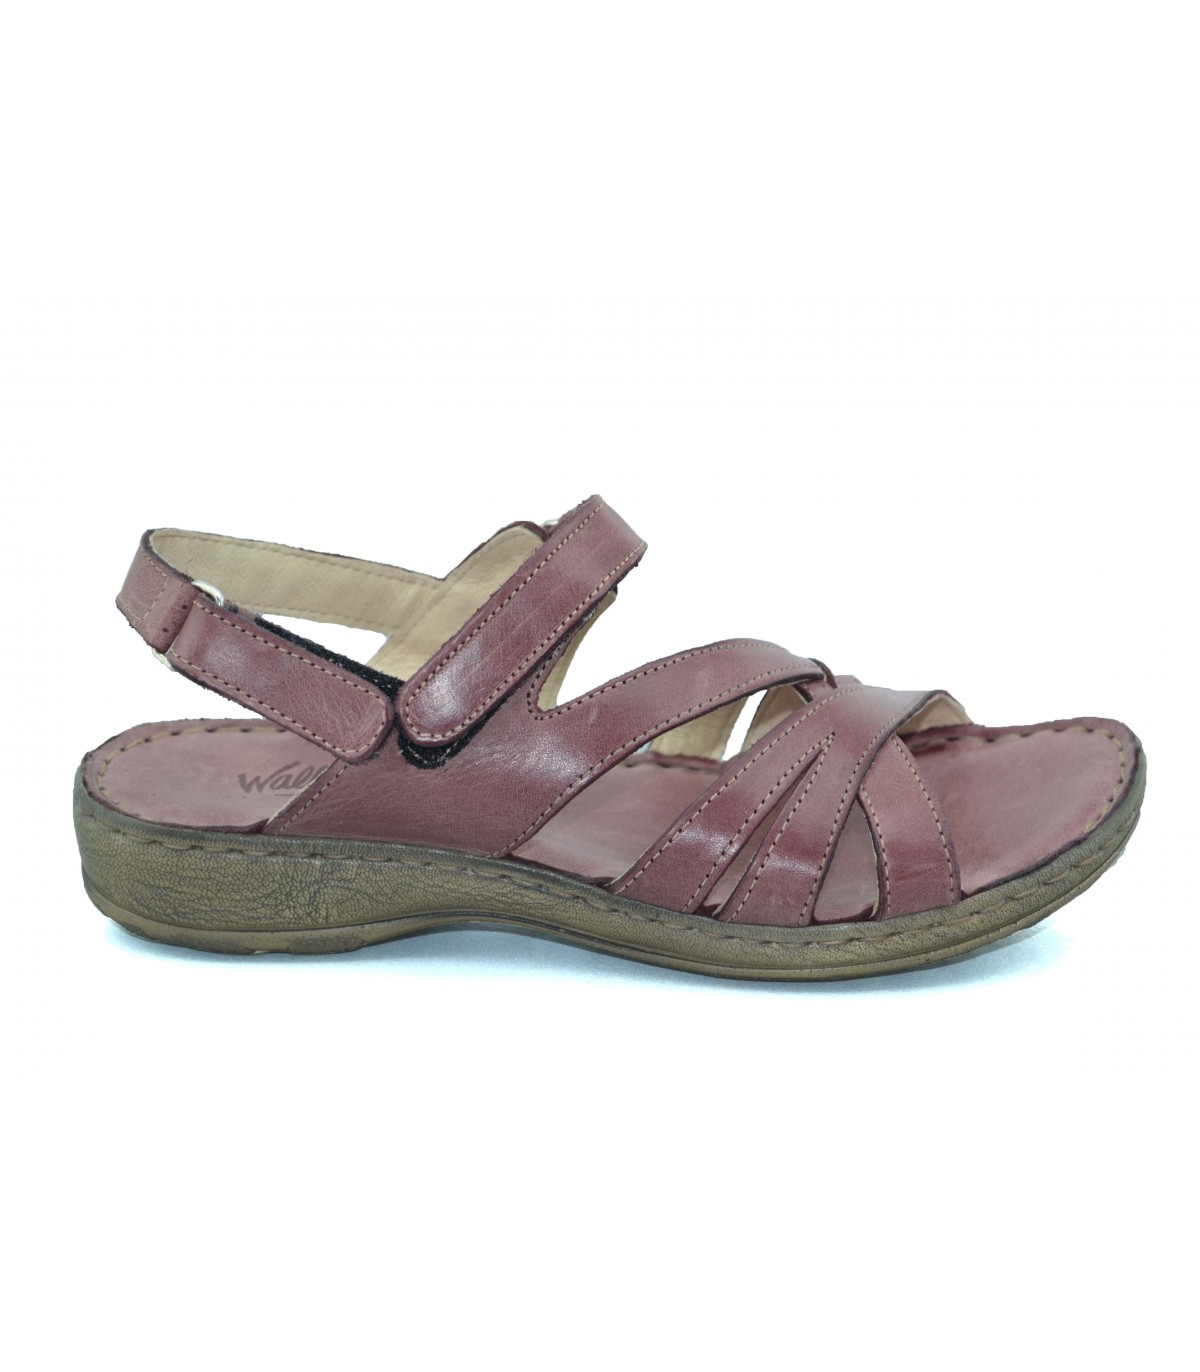 a59a312b Sandalias mujer WALK AND FLY 7325